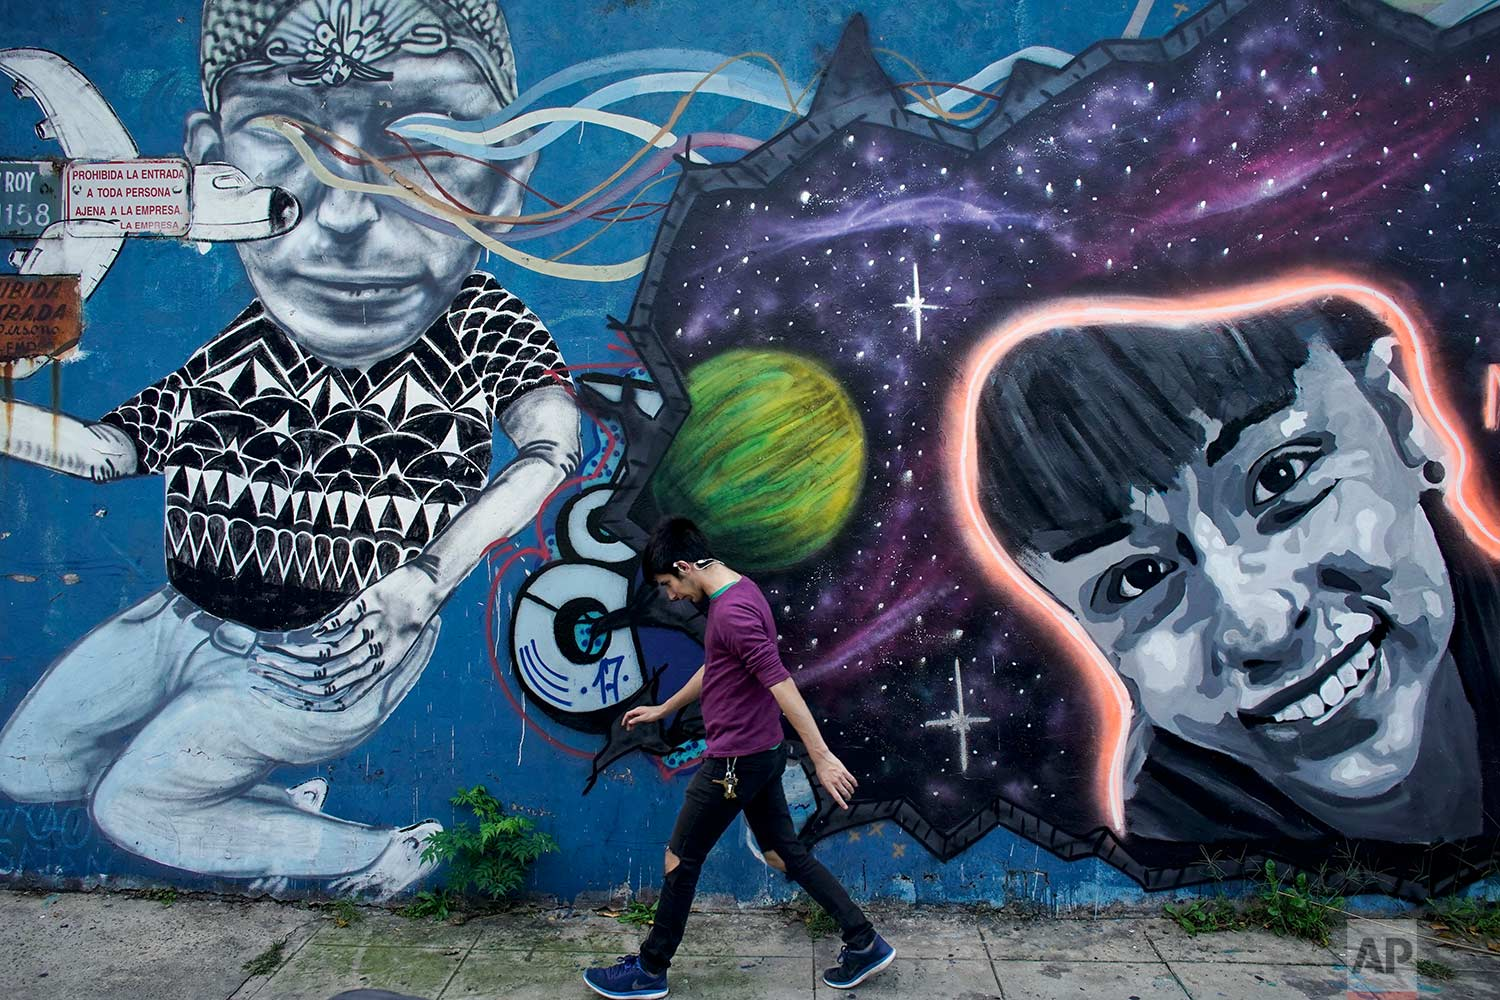 Argentines use murals to search for missing children: https://t.co/b1pX8jQcfv https://t.co/DD1bOmDNSz